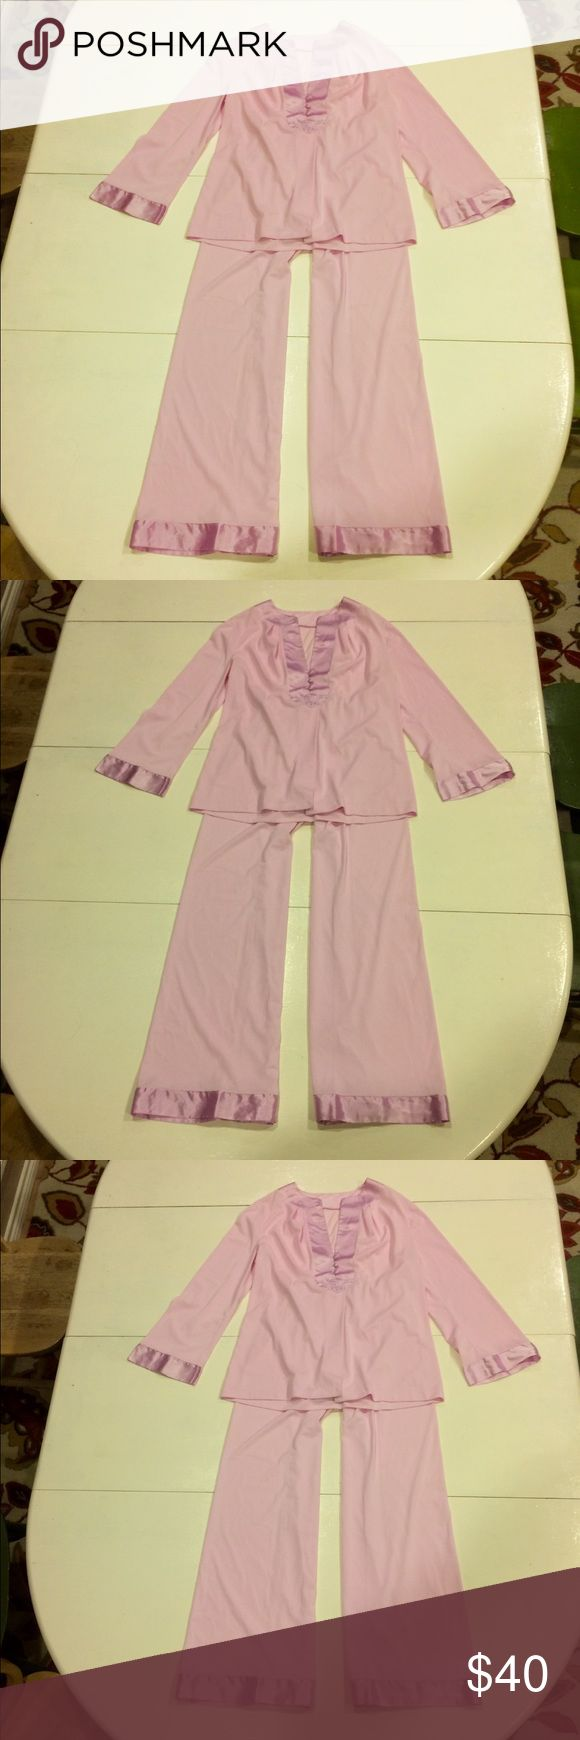 💘VintGossardArtemisSilkyPajamas💘 Lucky Find!! 1960's Gorgeous Pajama Set in Excellent Condition                        Lilac Tricot Fabric, Wide Satin Trim on Cuffs and chest of shirt and the cuffs on the pants. The softest, smoothest material that you just don't see anymore.  3 satin covered buttons at the chest, and beneath that the top is open. Elastic waistband on the pants and awesome flared legs.                        SeeCommentsForMeasurements             💖💖💖💖💖💖💖💖💖💖💖💖💖…